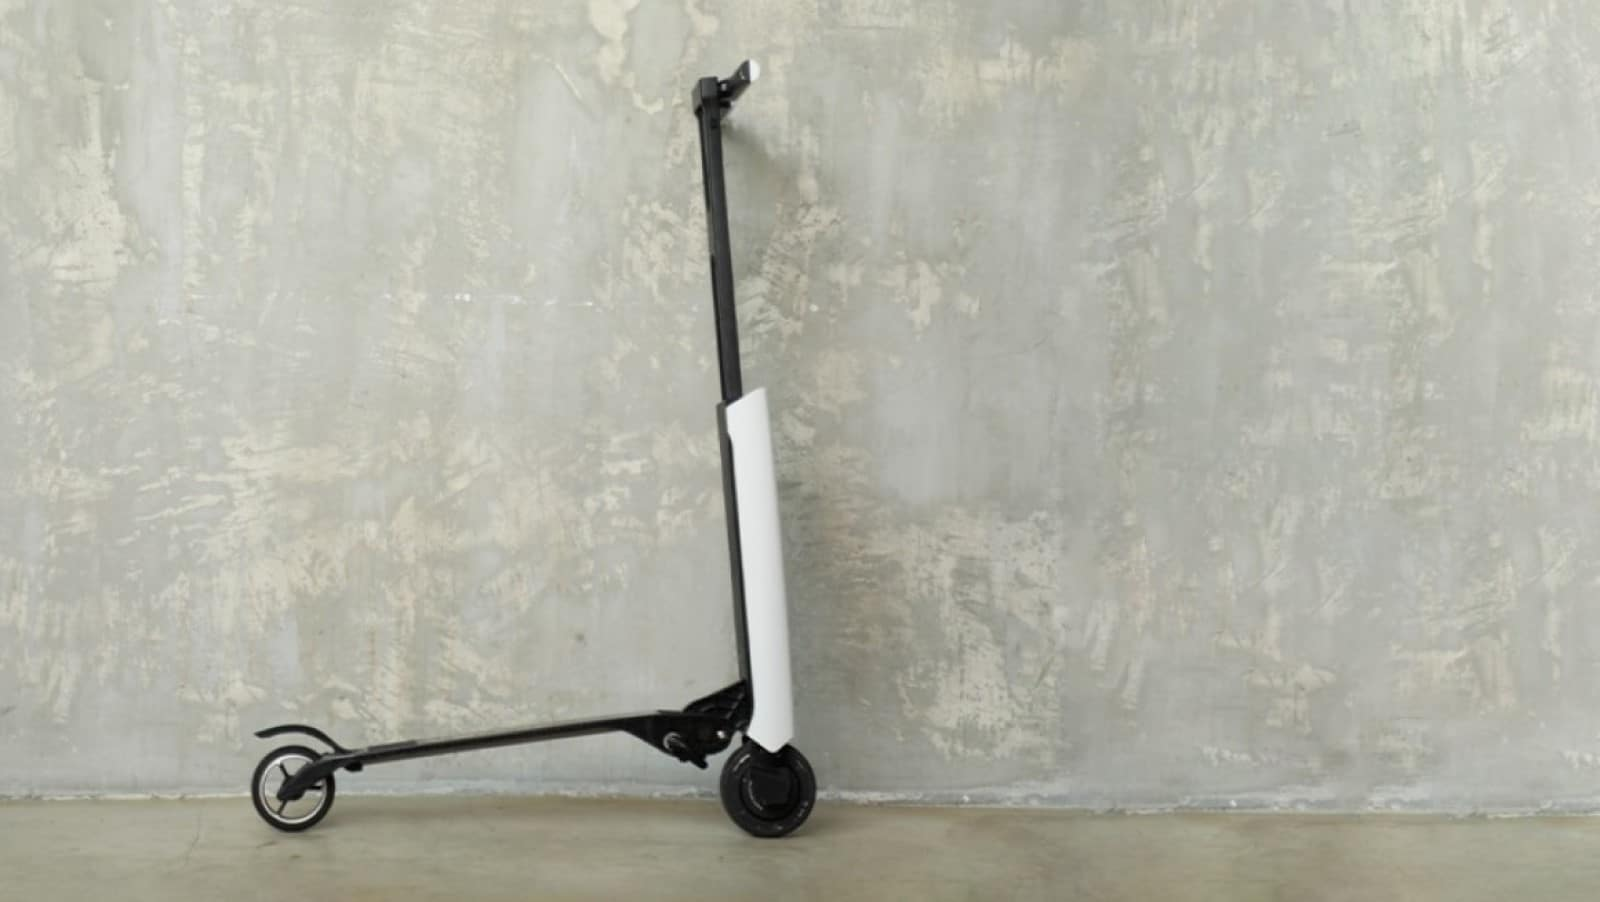 white scooter against wall crowdfunding